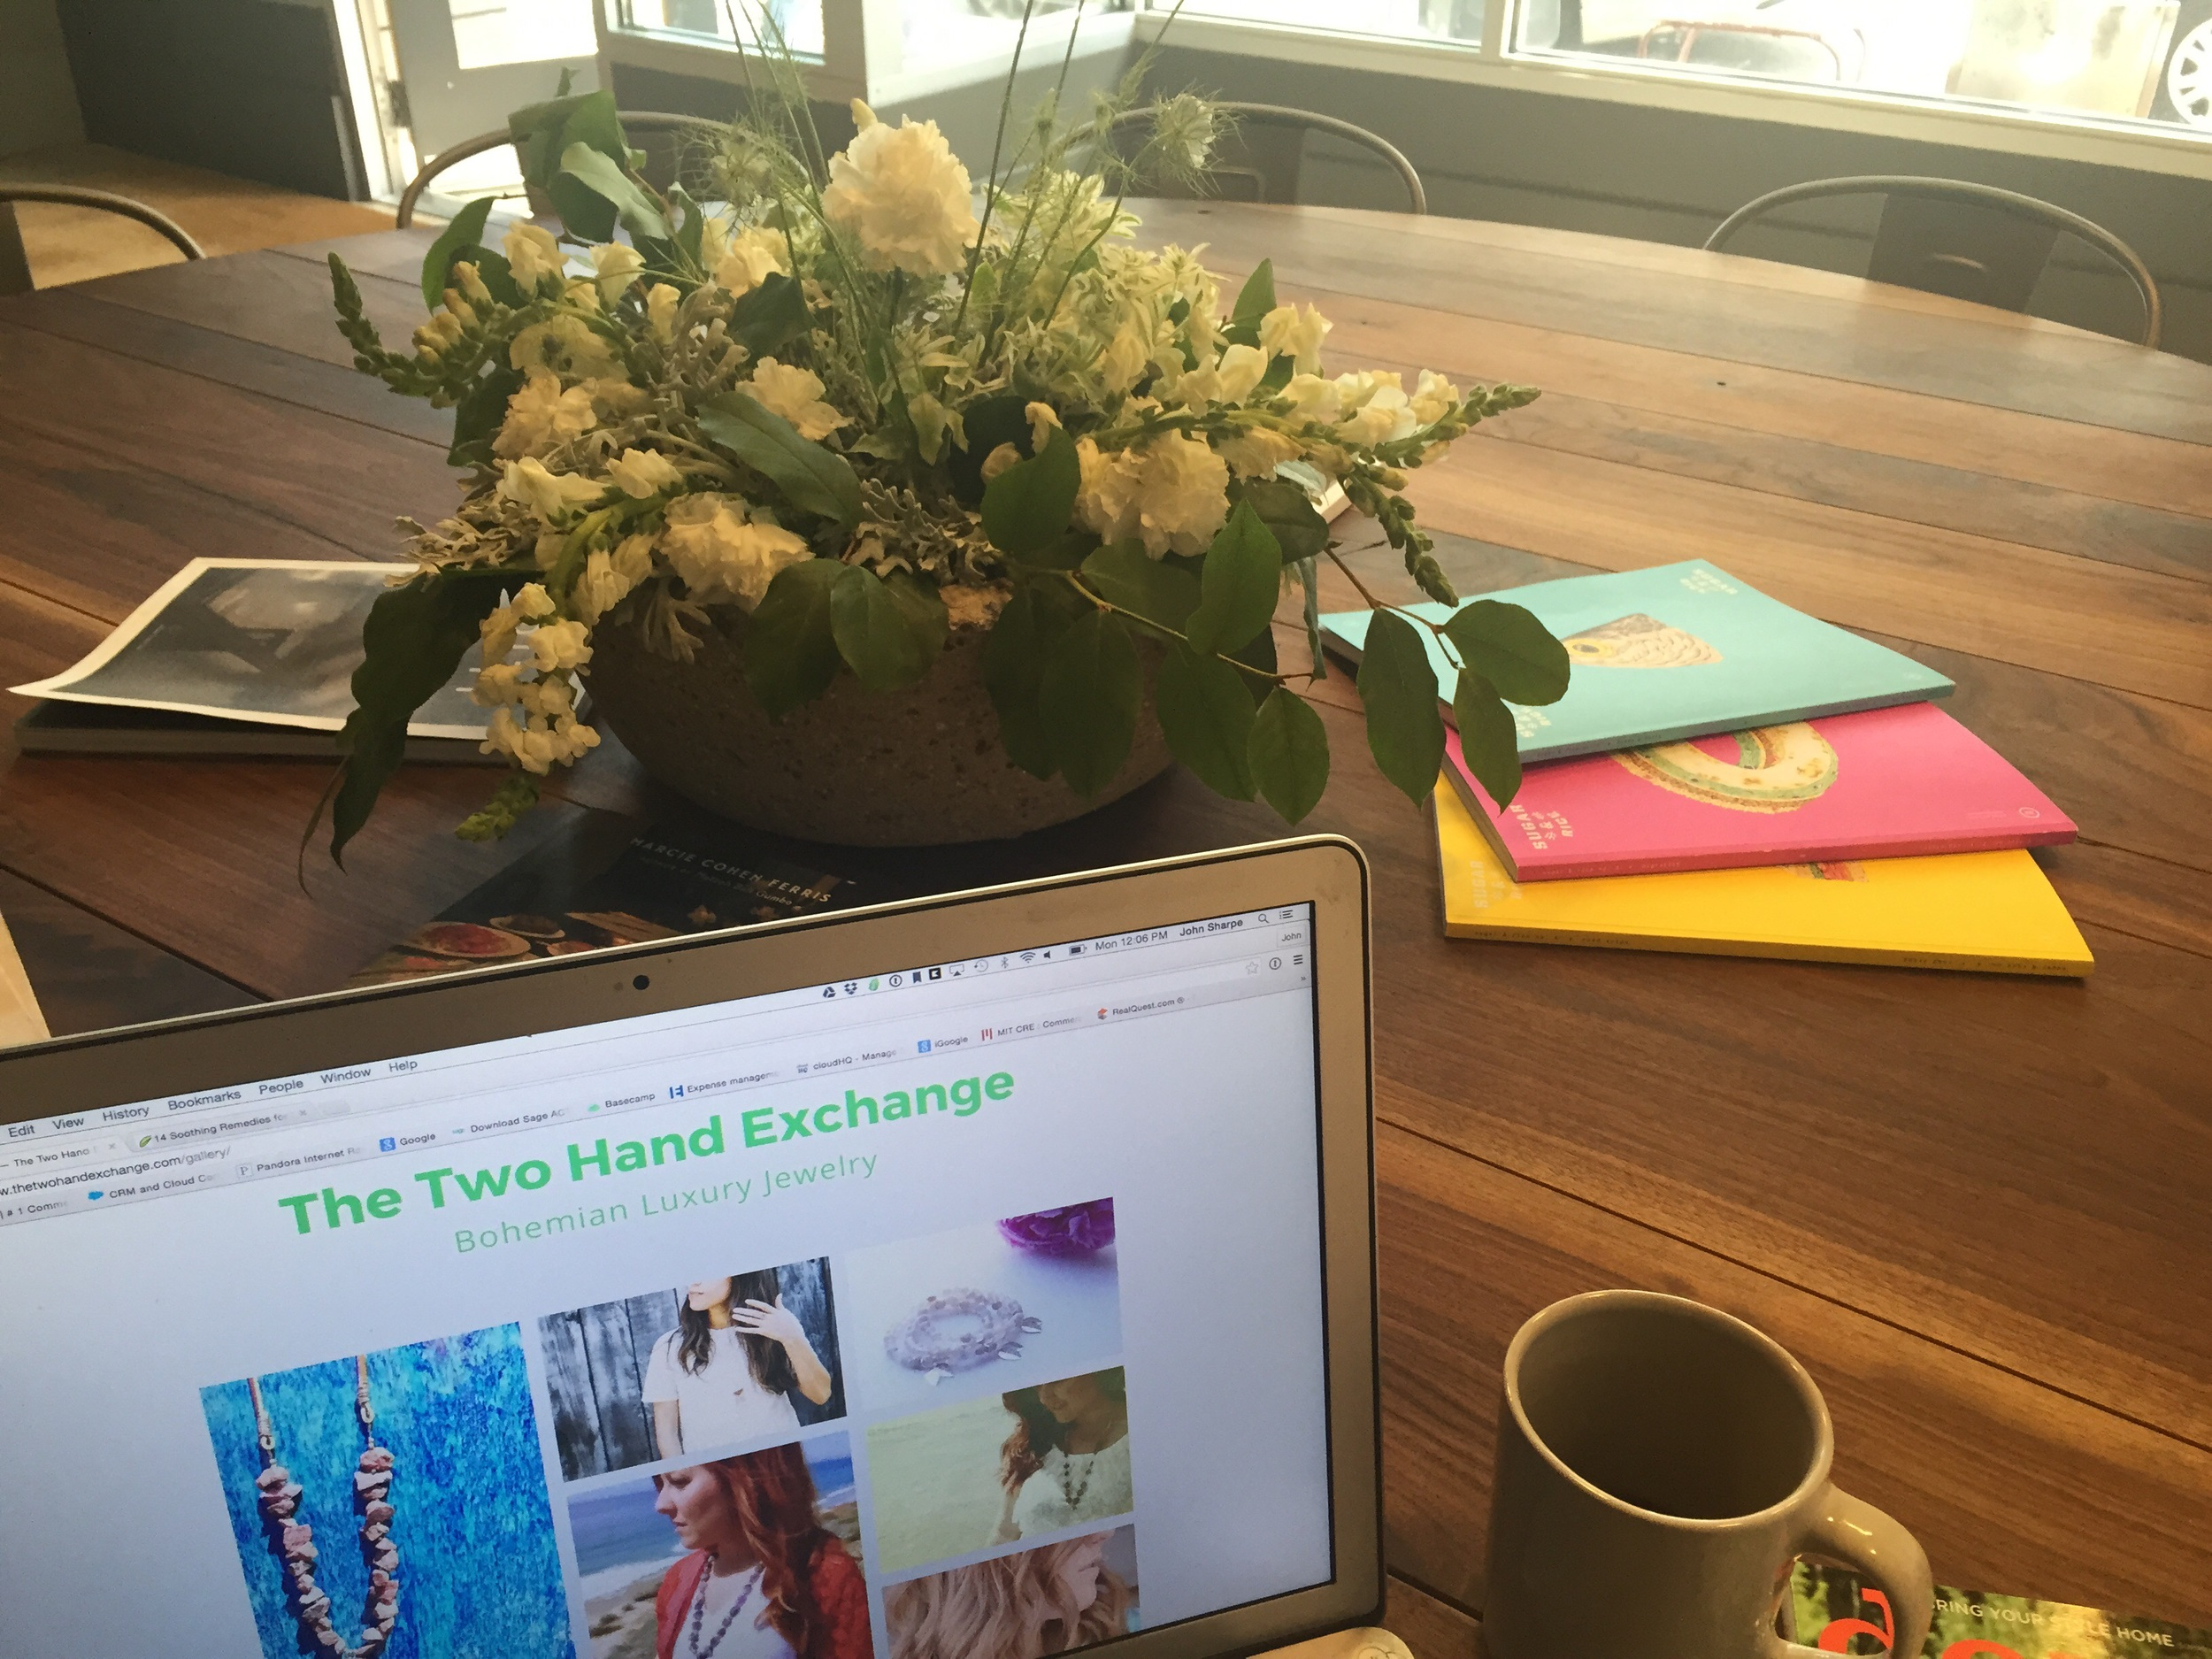 Catching up on the blog.